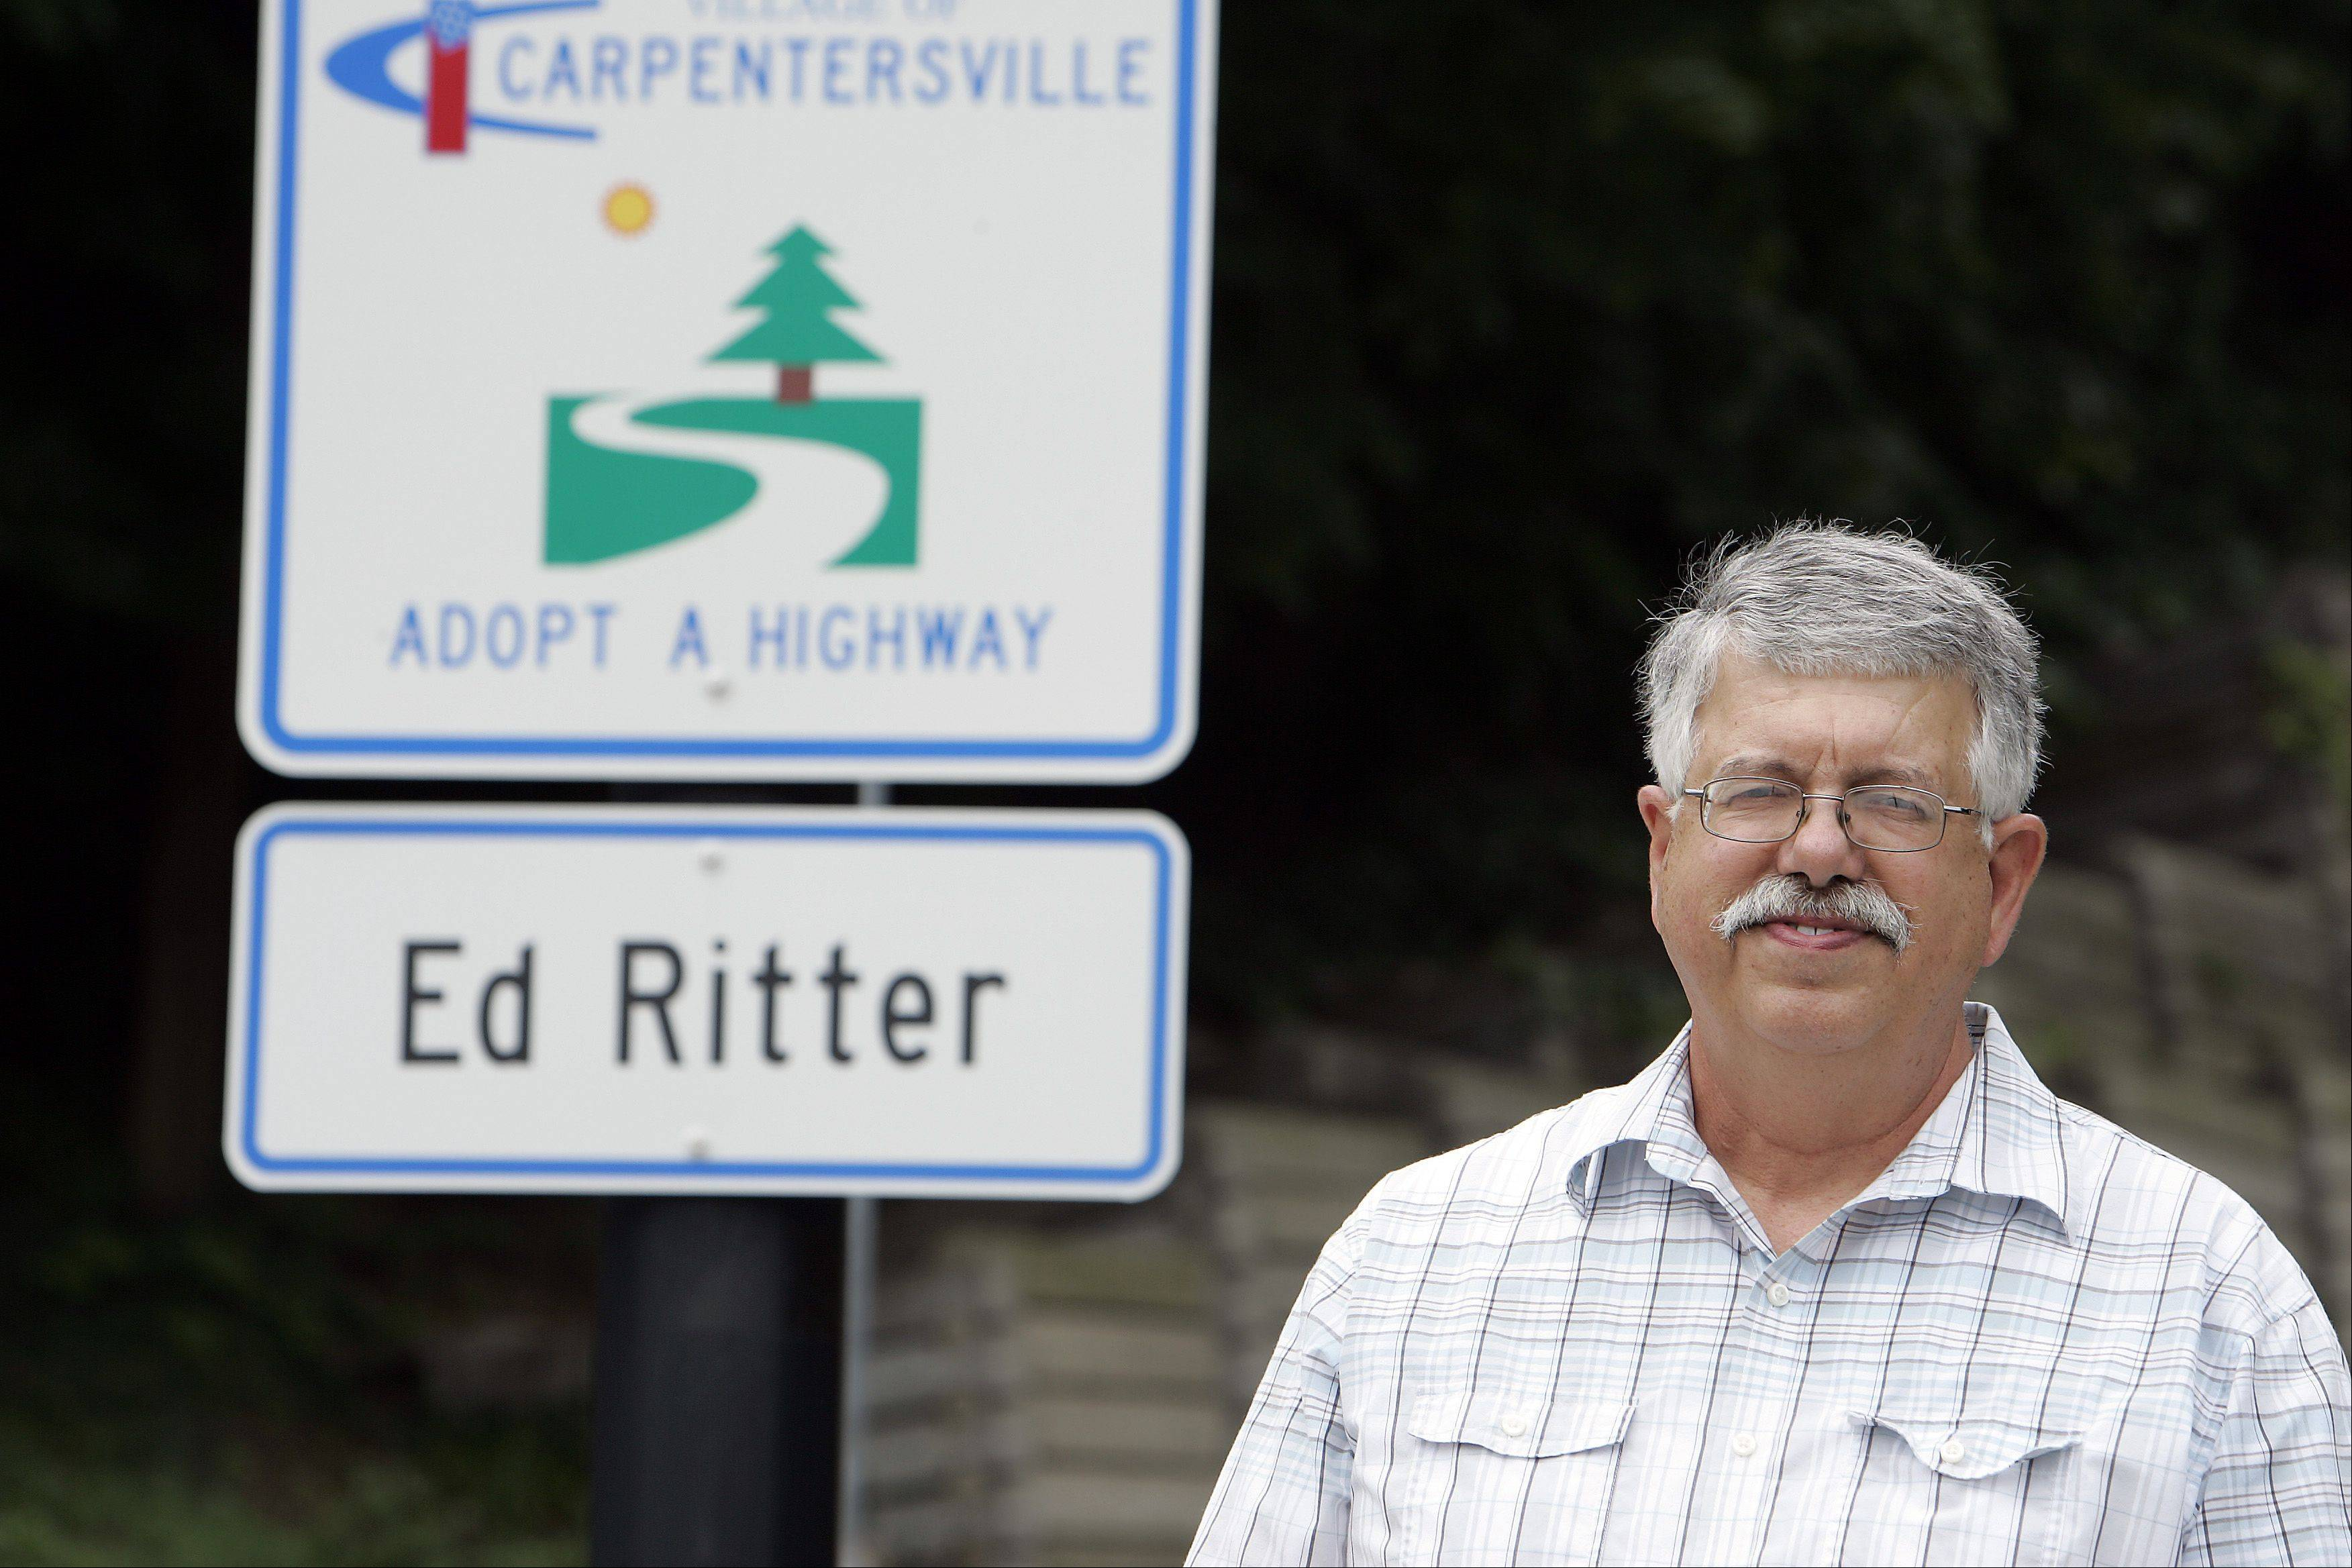 Village President Ed Ritter stands next to a sign along West Main Street in Carpentersville. Ritter, who lives not too far from the sign, is responsible for keeping this part of Main Street clean.